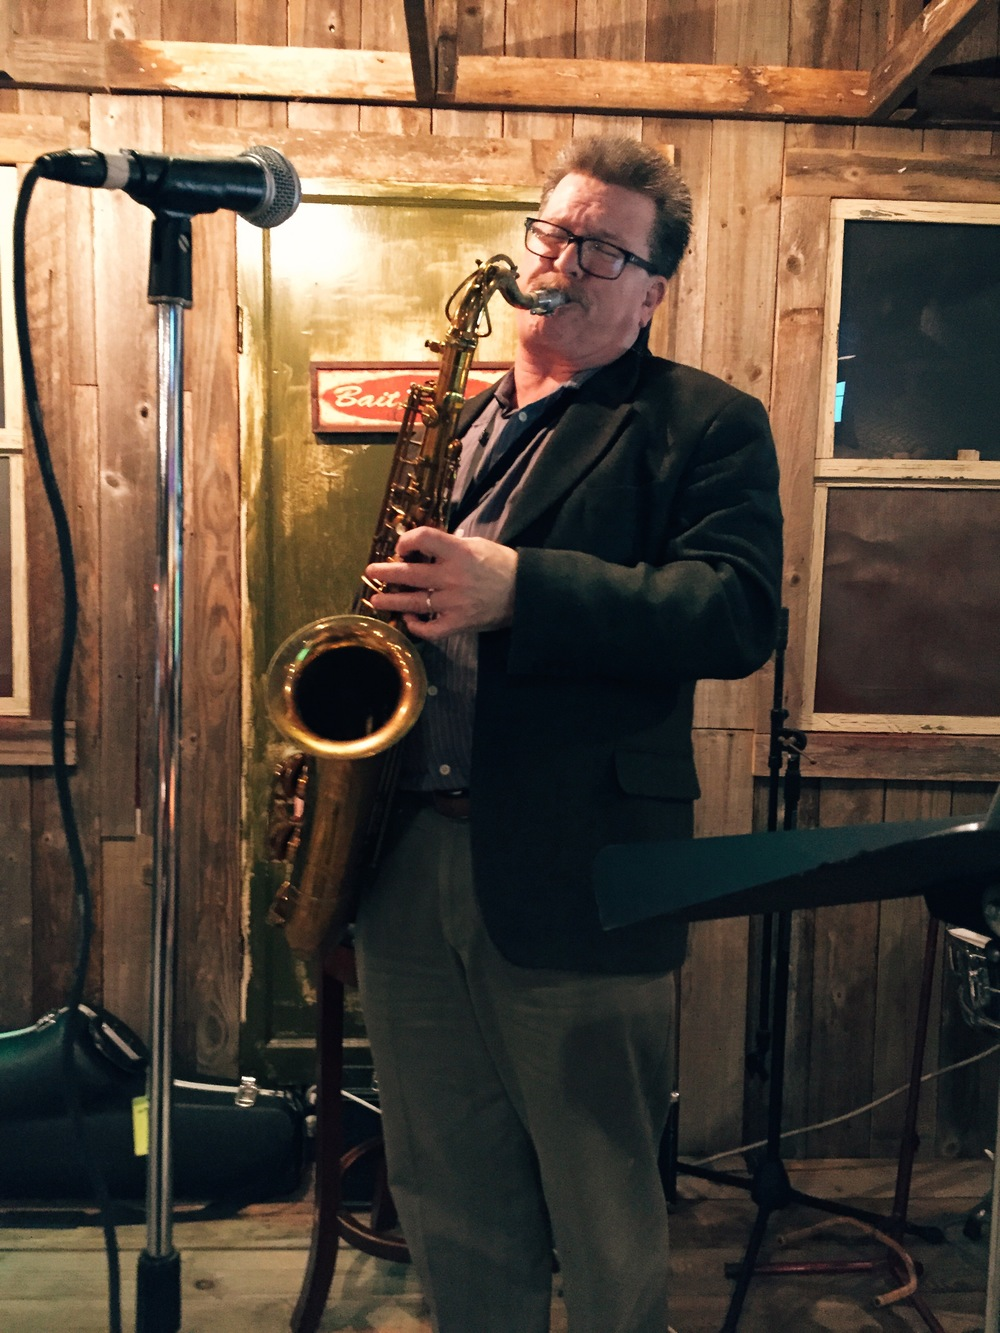 Live Jazz on the 2nd Thursday of the month with Don Pope at 6pm.